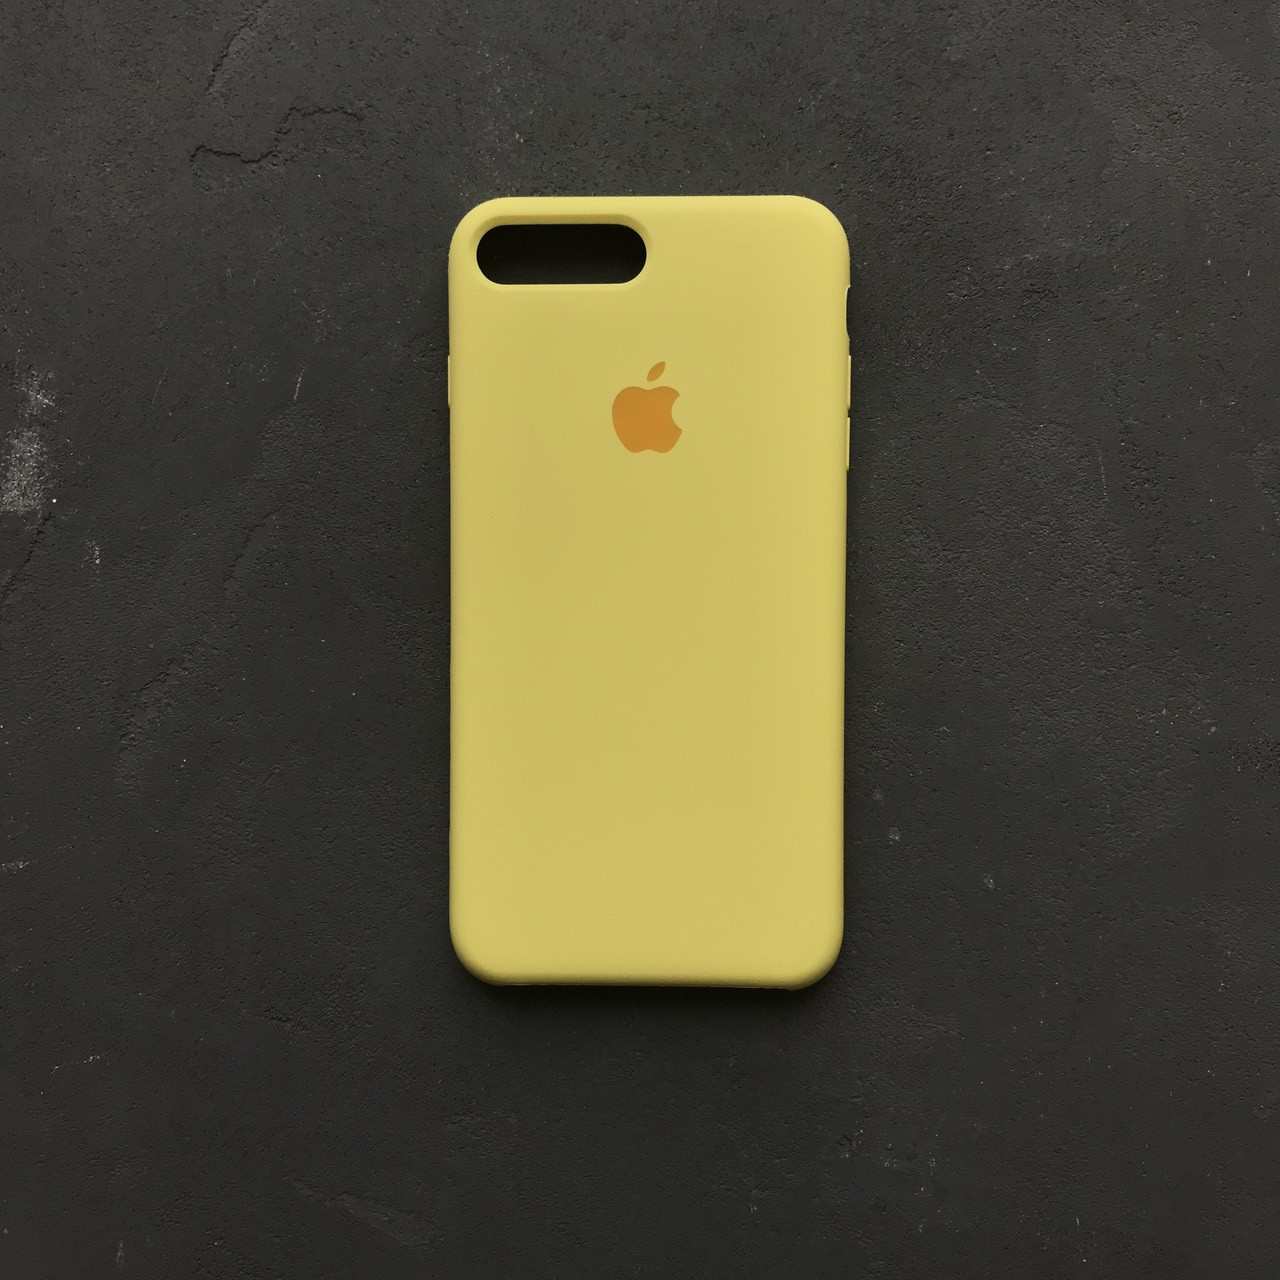 uk availability 1b93e 144a6 Силиконовый чехол на айфон 7 plus желтый Silicone Case iPhone 7+ lemonade -  Bigl.ua